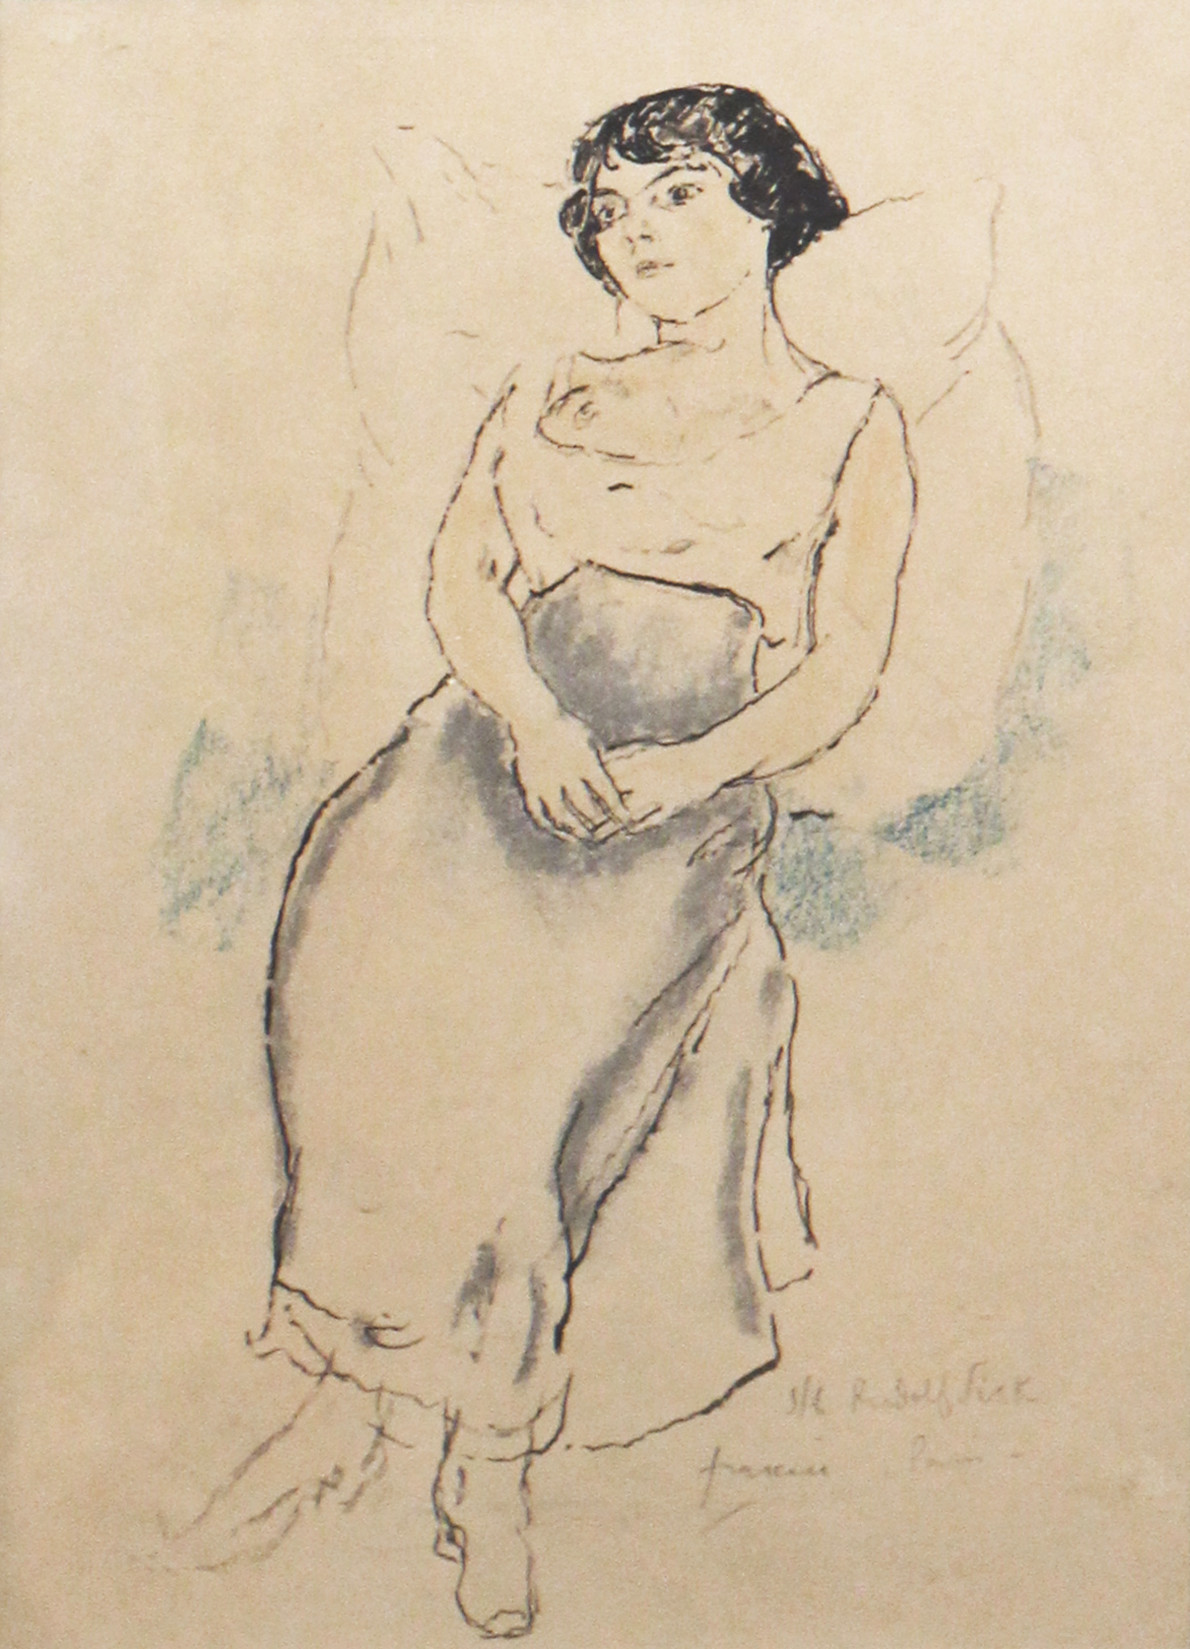 Jules Pascin, Portrait de jeune fille, 1908